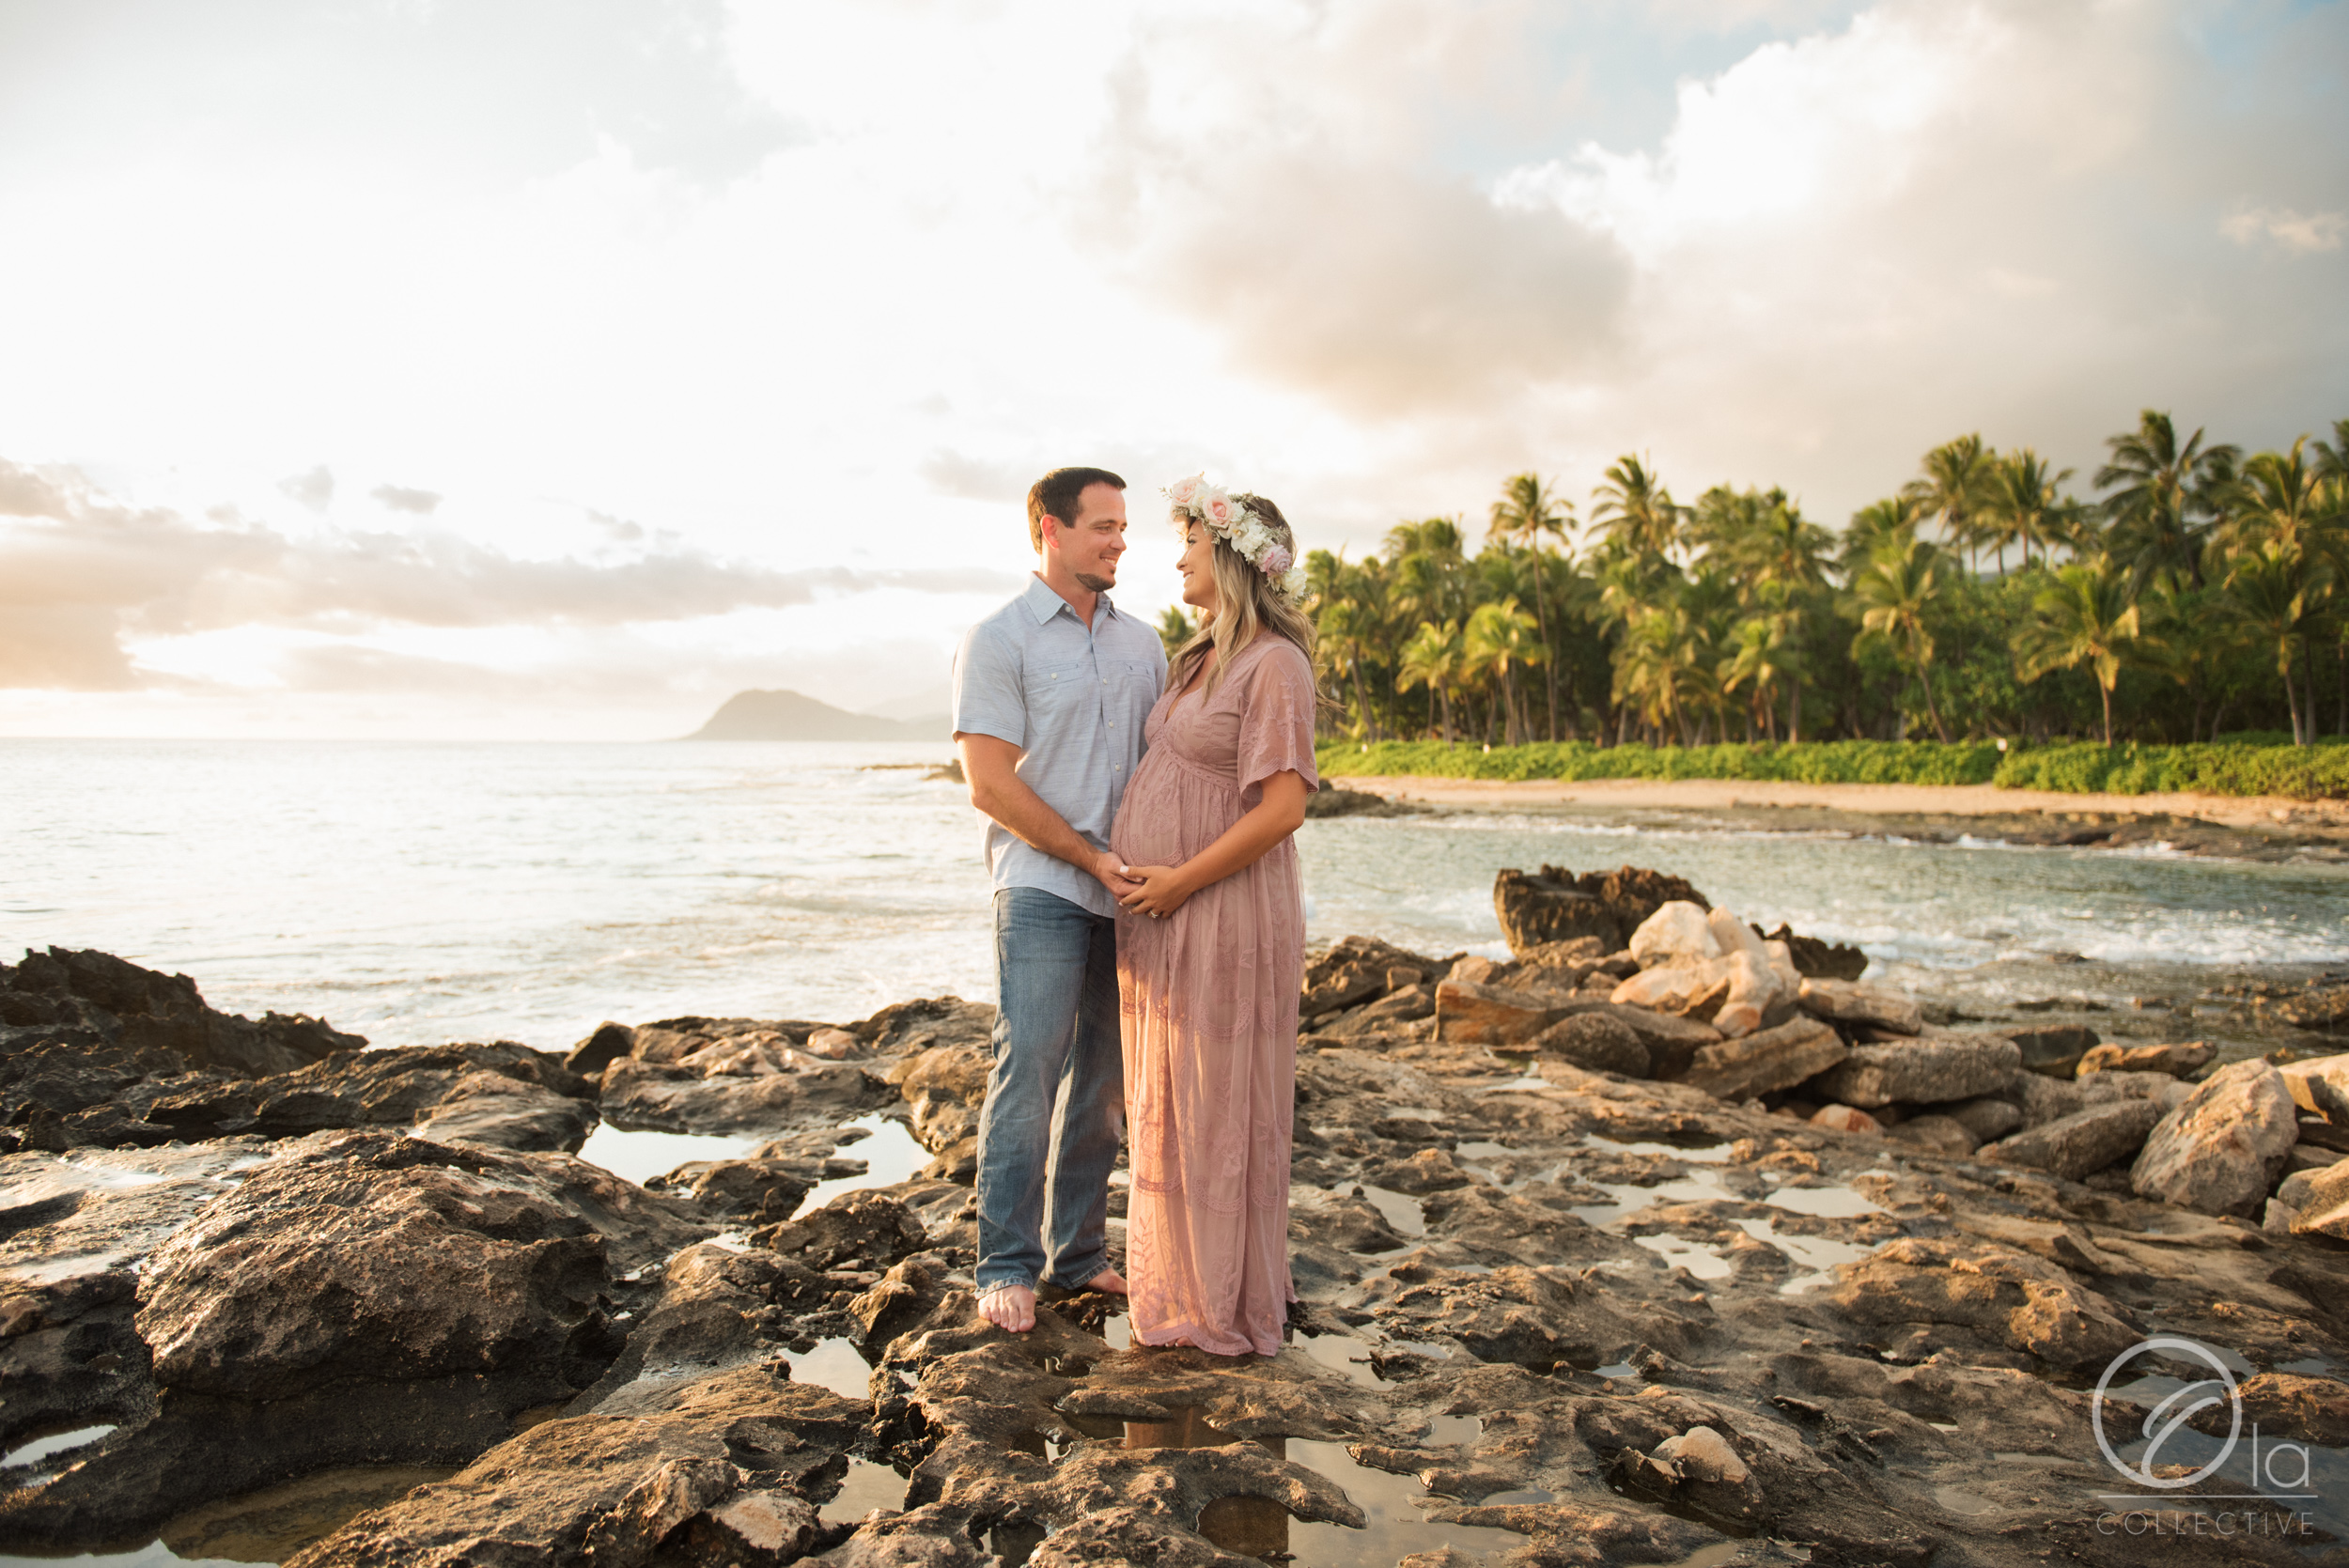 Mr. and Mrs. F's outfits perfectly complimented the tones of the sunset that evening!